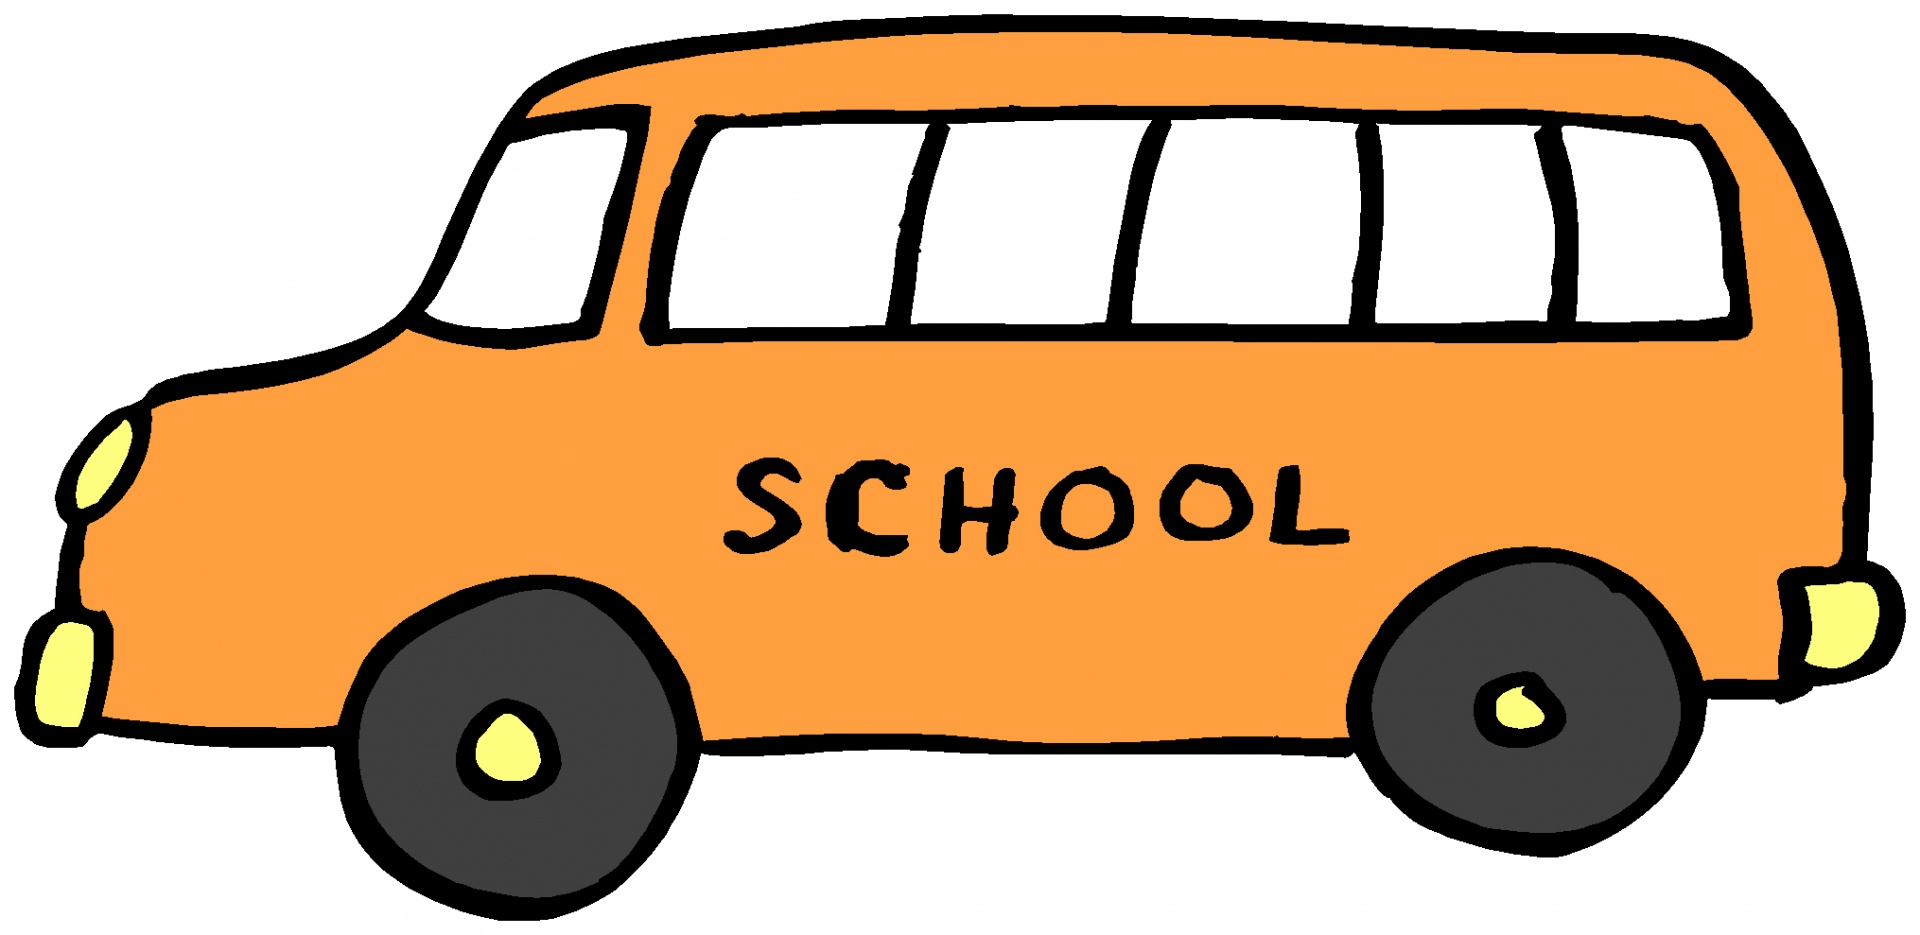 vw bus clipart at getdrawings com free for personal use vw bus rh getdrawings com hippie van clip art